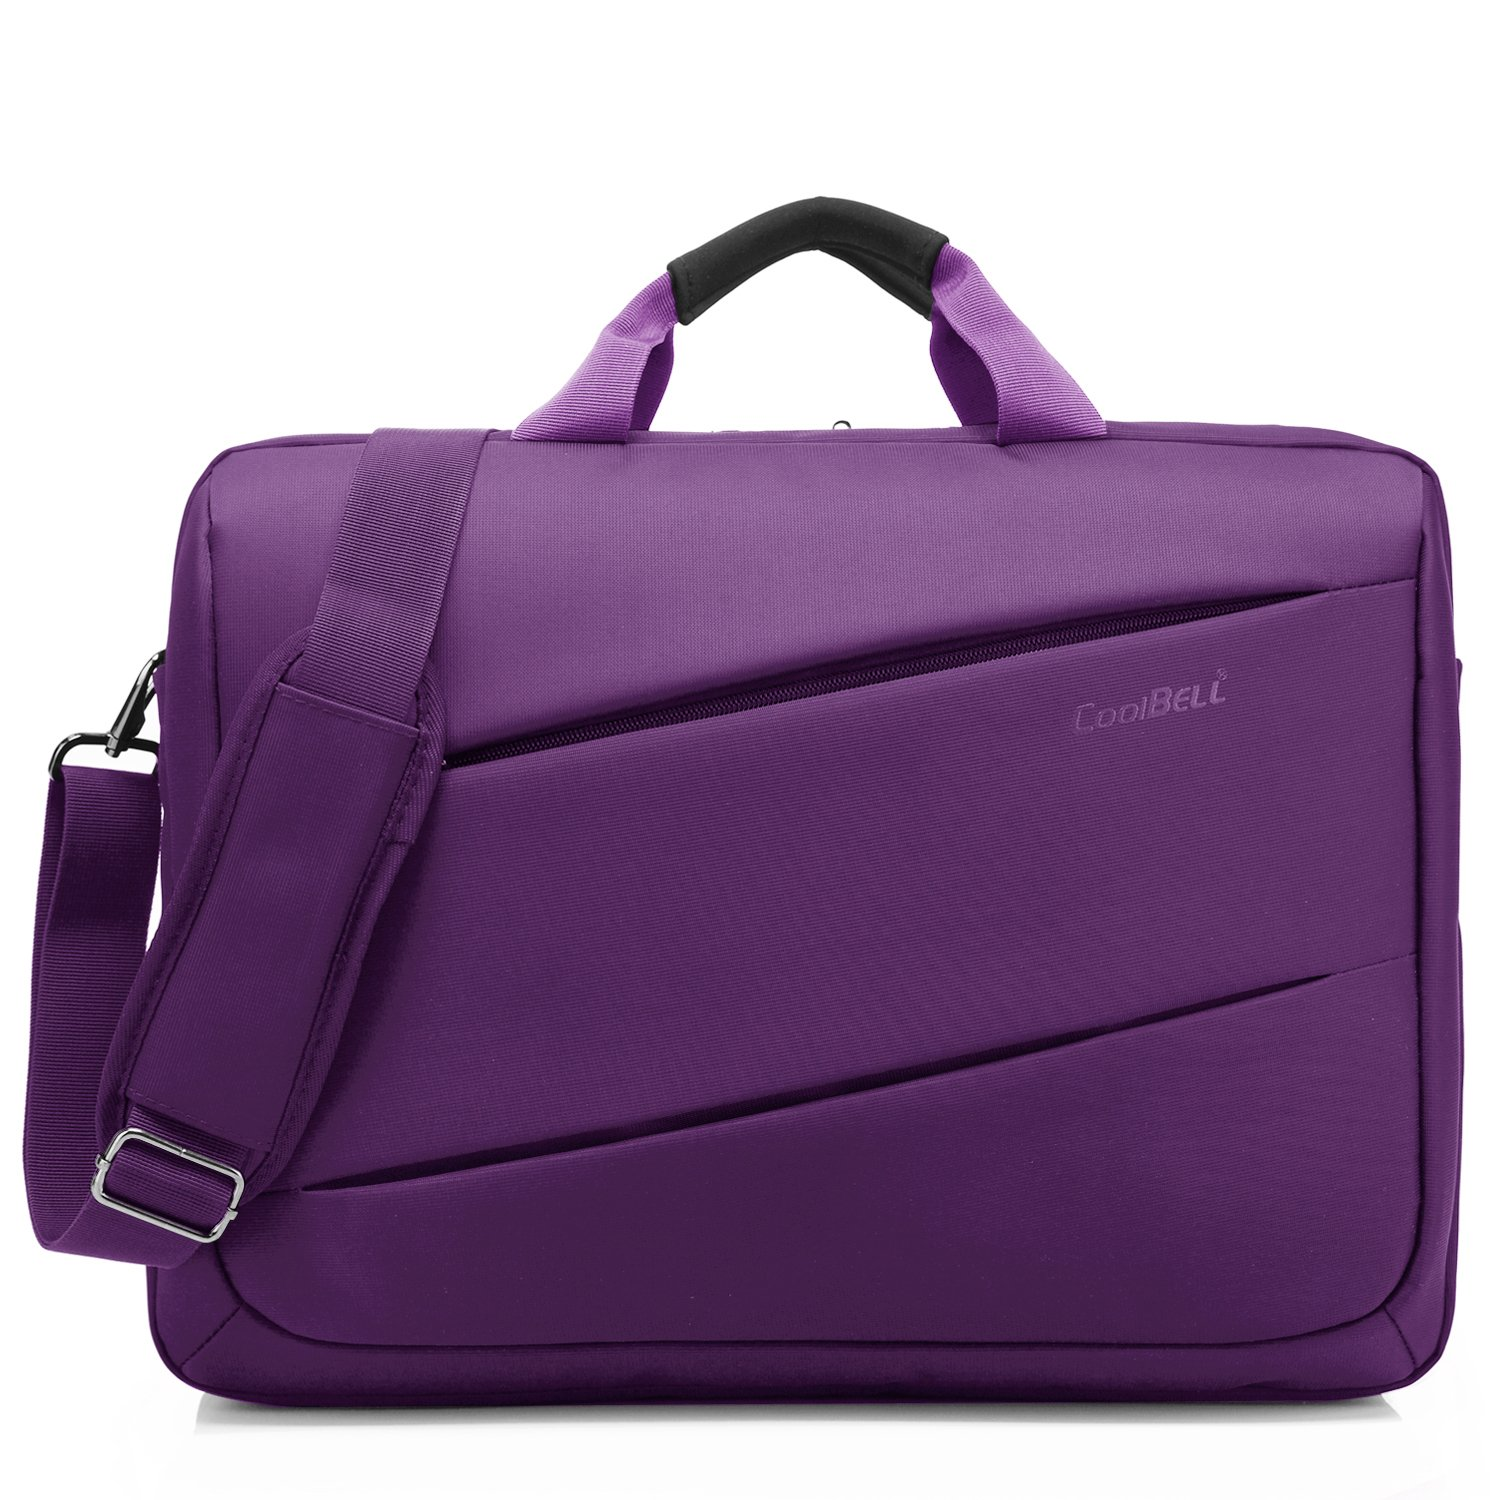 CoolBELL Shoulder Bag 17.3 Inch Laptop Bag Messenger Bag Briefcase Multi-Compartment Handbag for Dell Alienware/MacBook / HP/Lenovo / College/Women/Business (Purple)